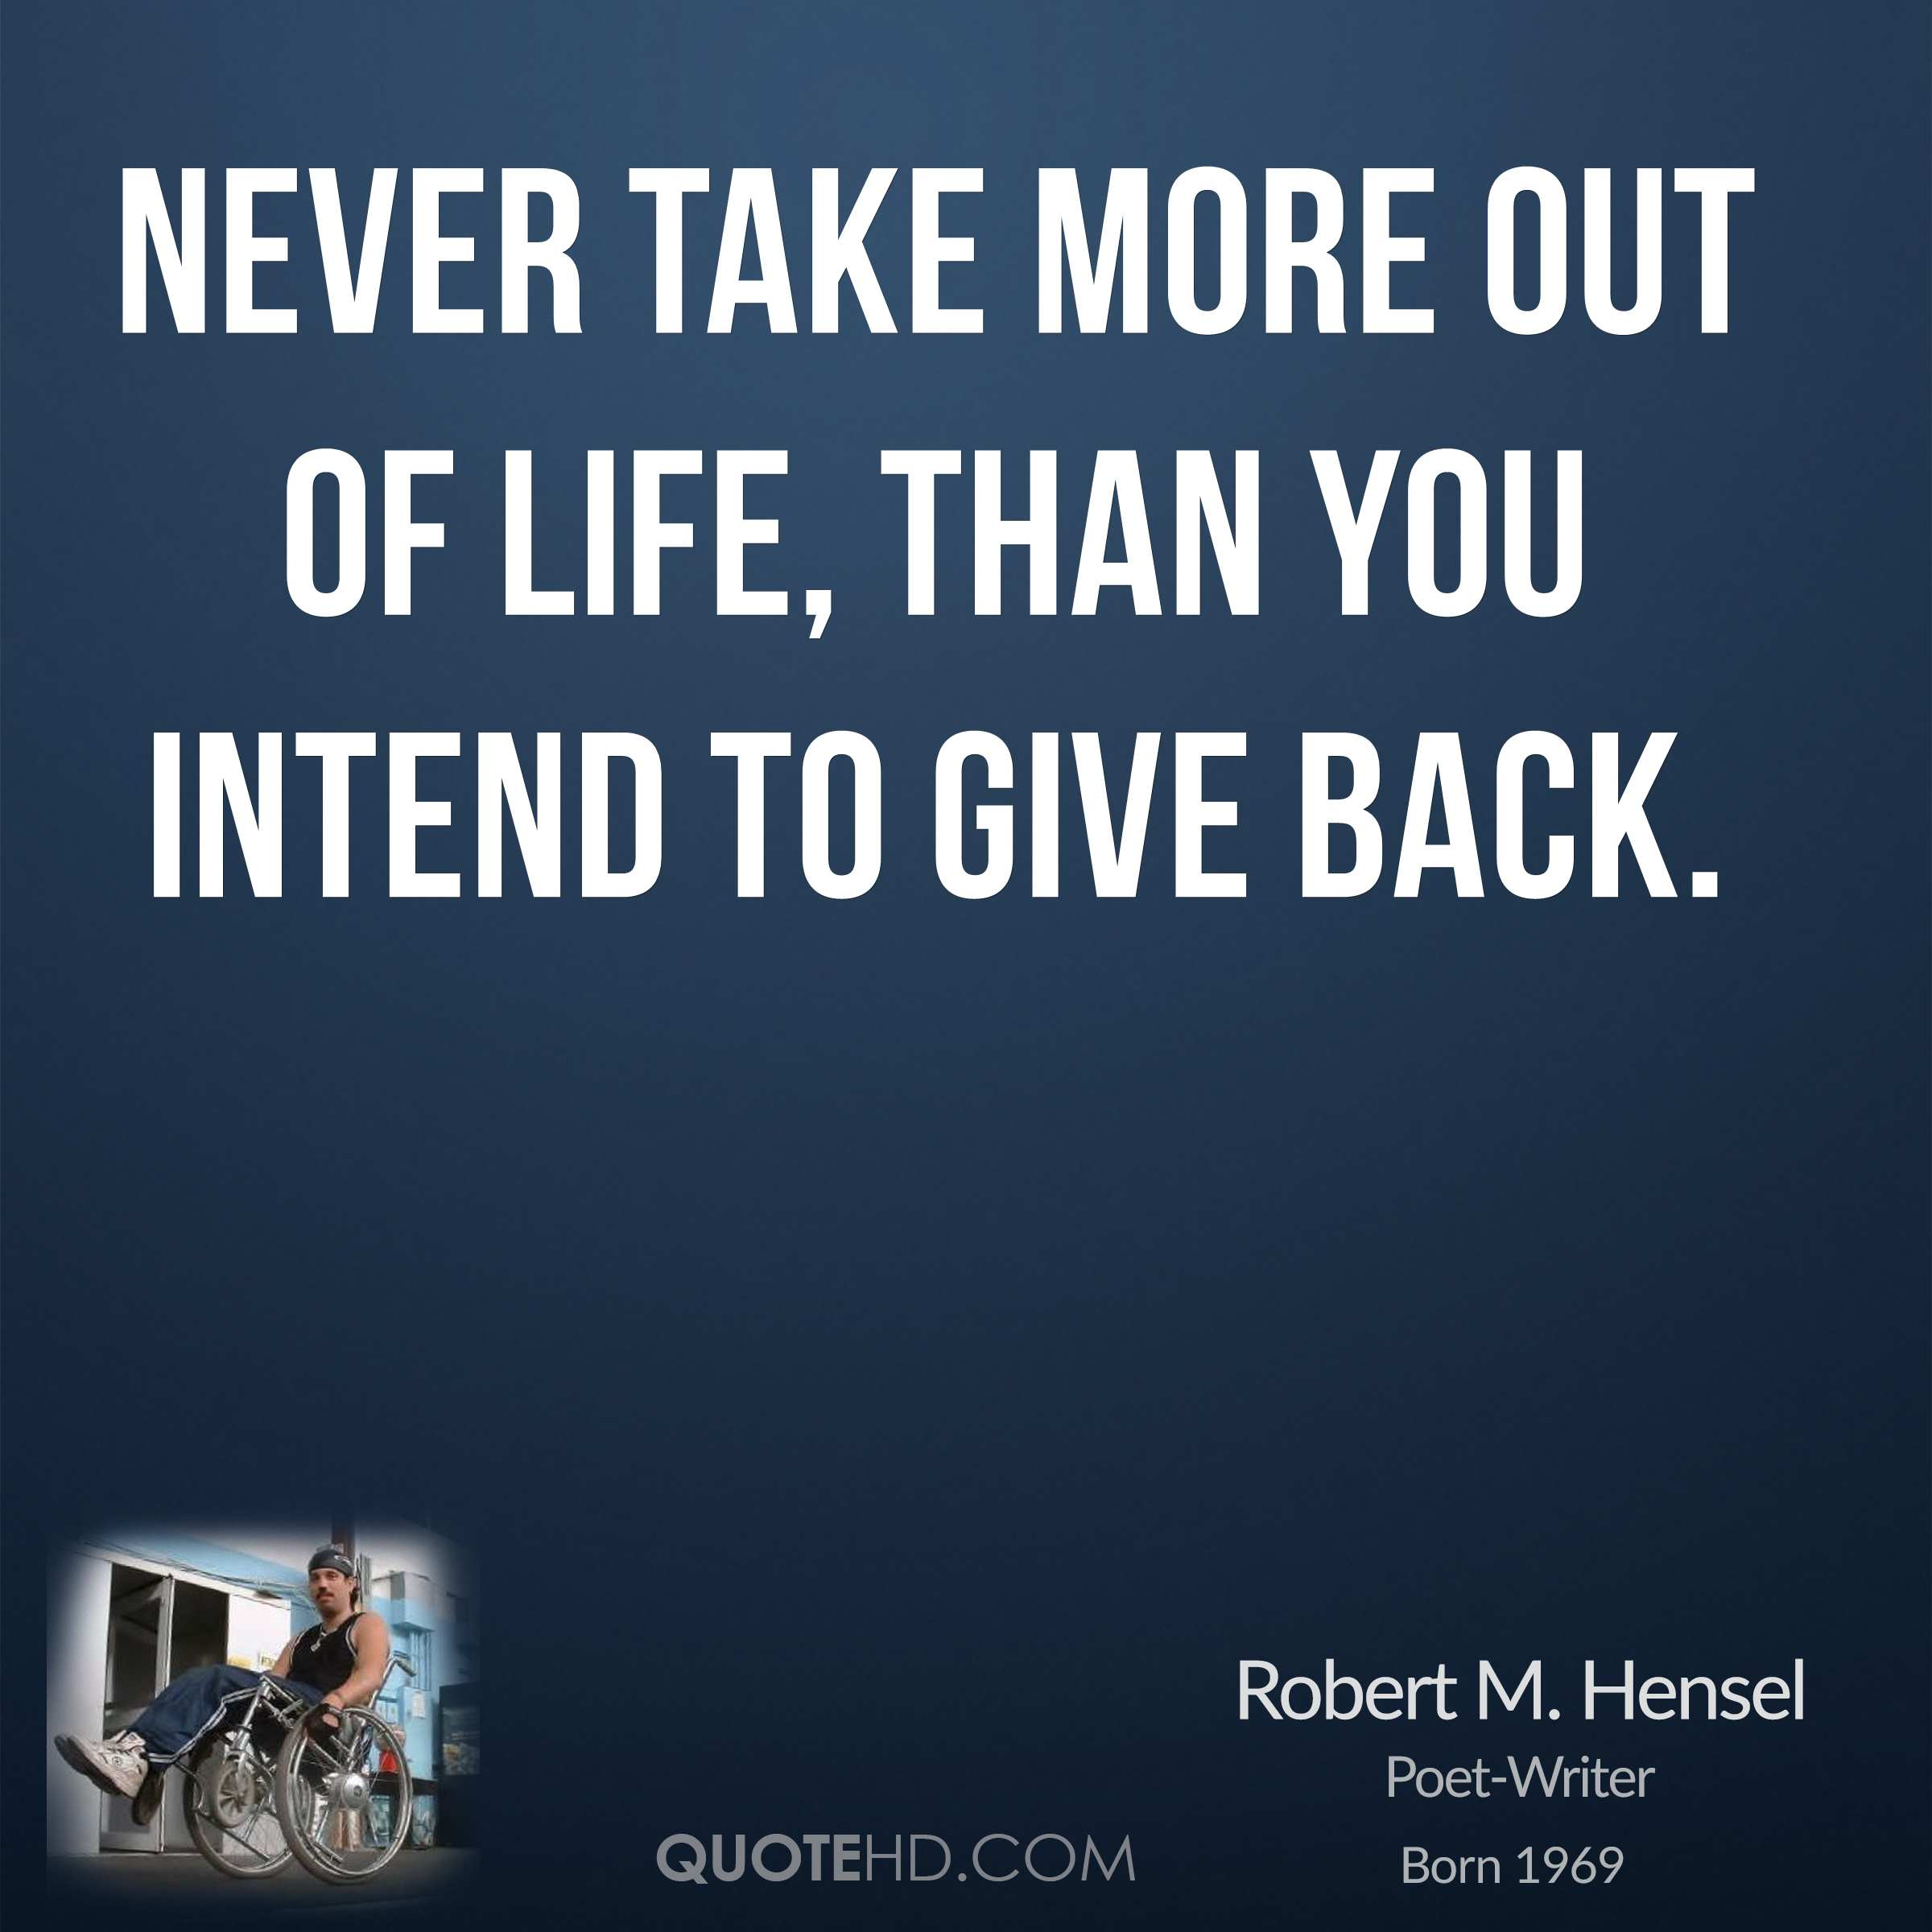 Never take more out of life, than you intend to give back.